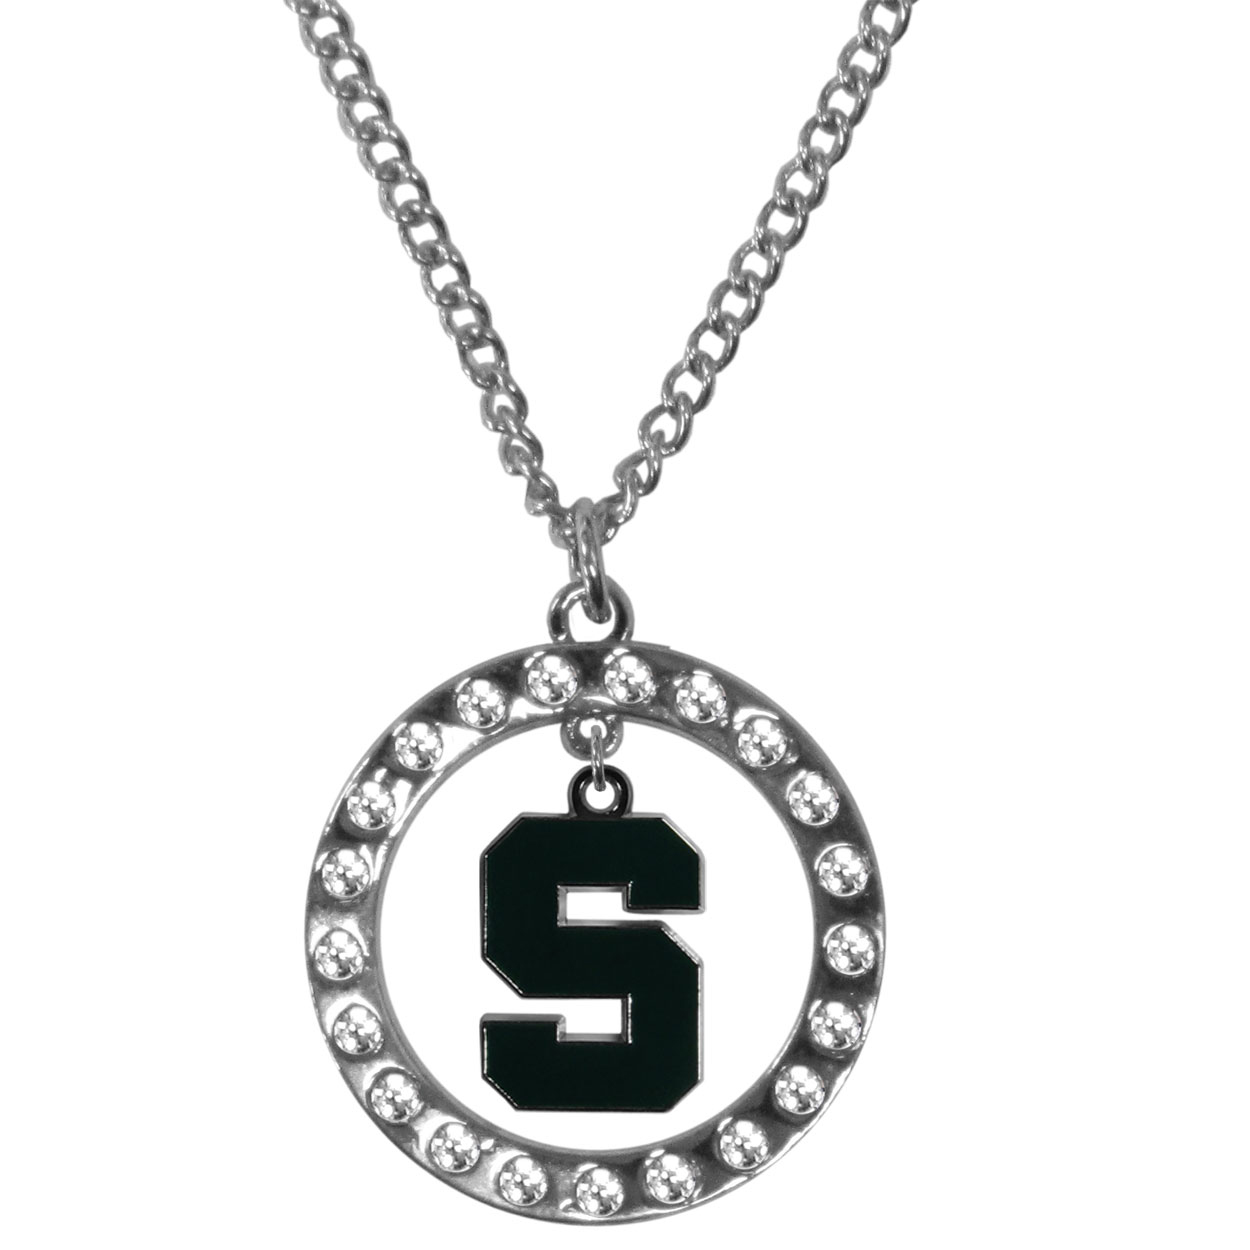 Michigan St. Spartans Rhinestone Hoop Necklaces - Our Michigan St. Spartans rhinestone hoop necklace comes on an 18 inch chain and features a hoop covered in rhinestones with a high polish chrome finish and a cast and enameled team charm dangling in the center.